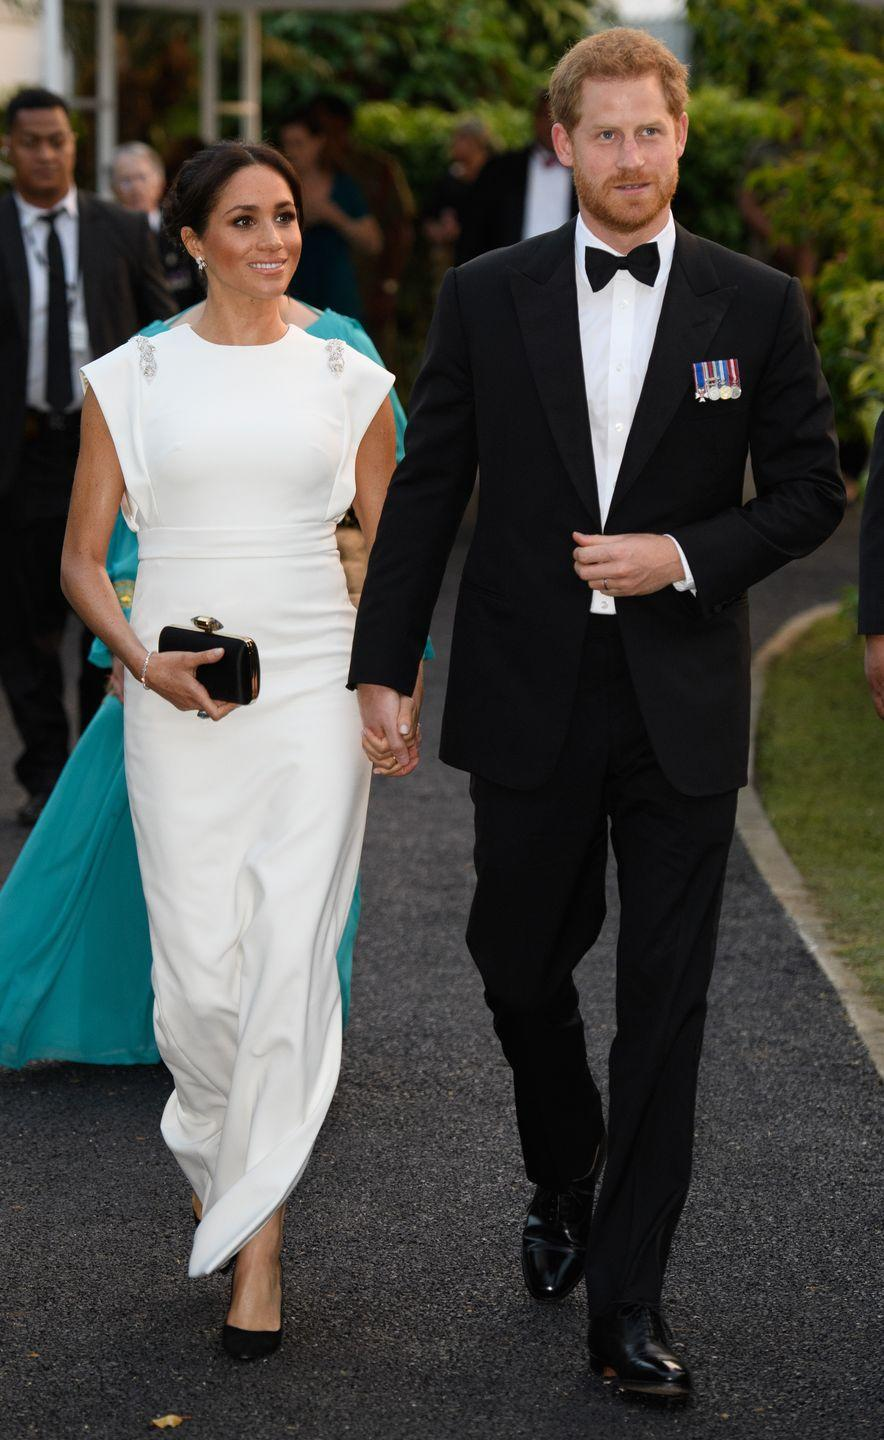 <p>Prince Harry wears his black tie best during a visit at the Consular House in NukuÕalofa with Meghan Markle. </p>